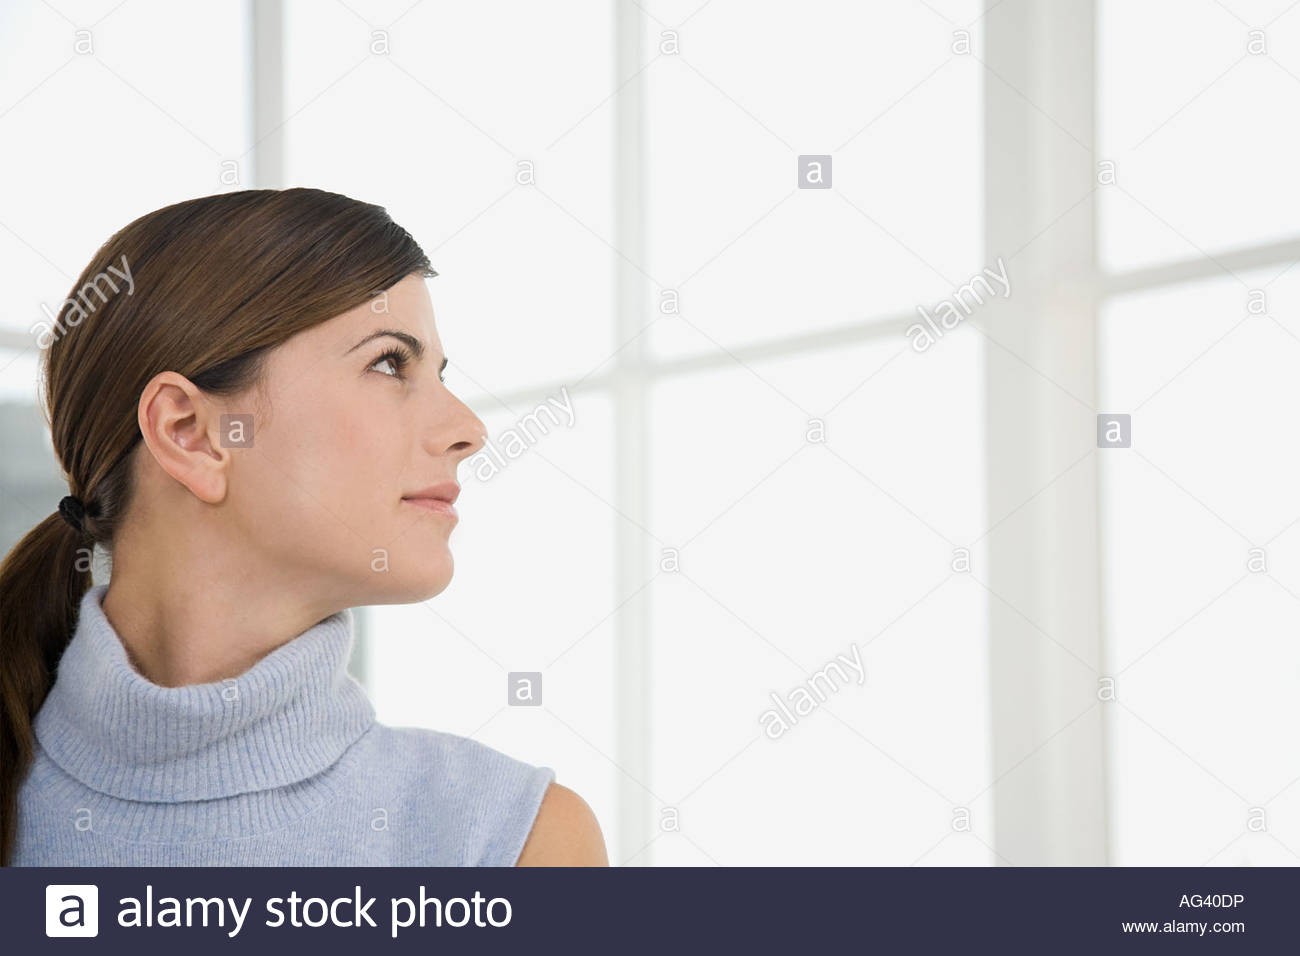 Woman looking at window - Stock Image